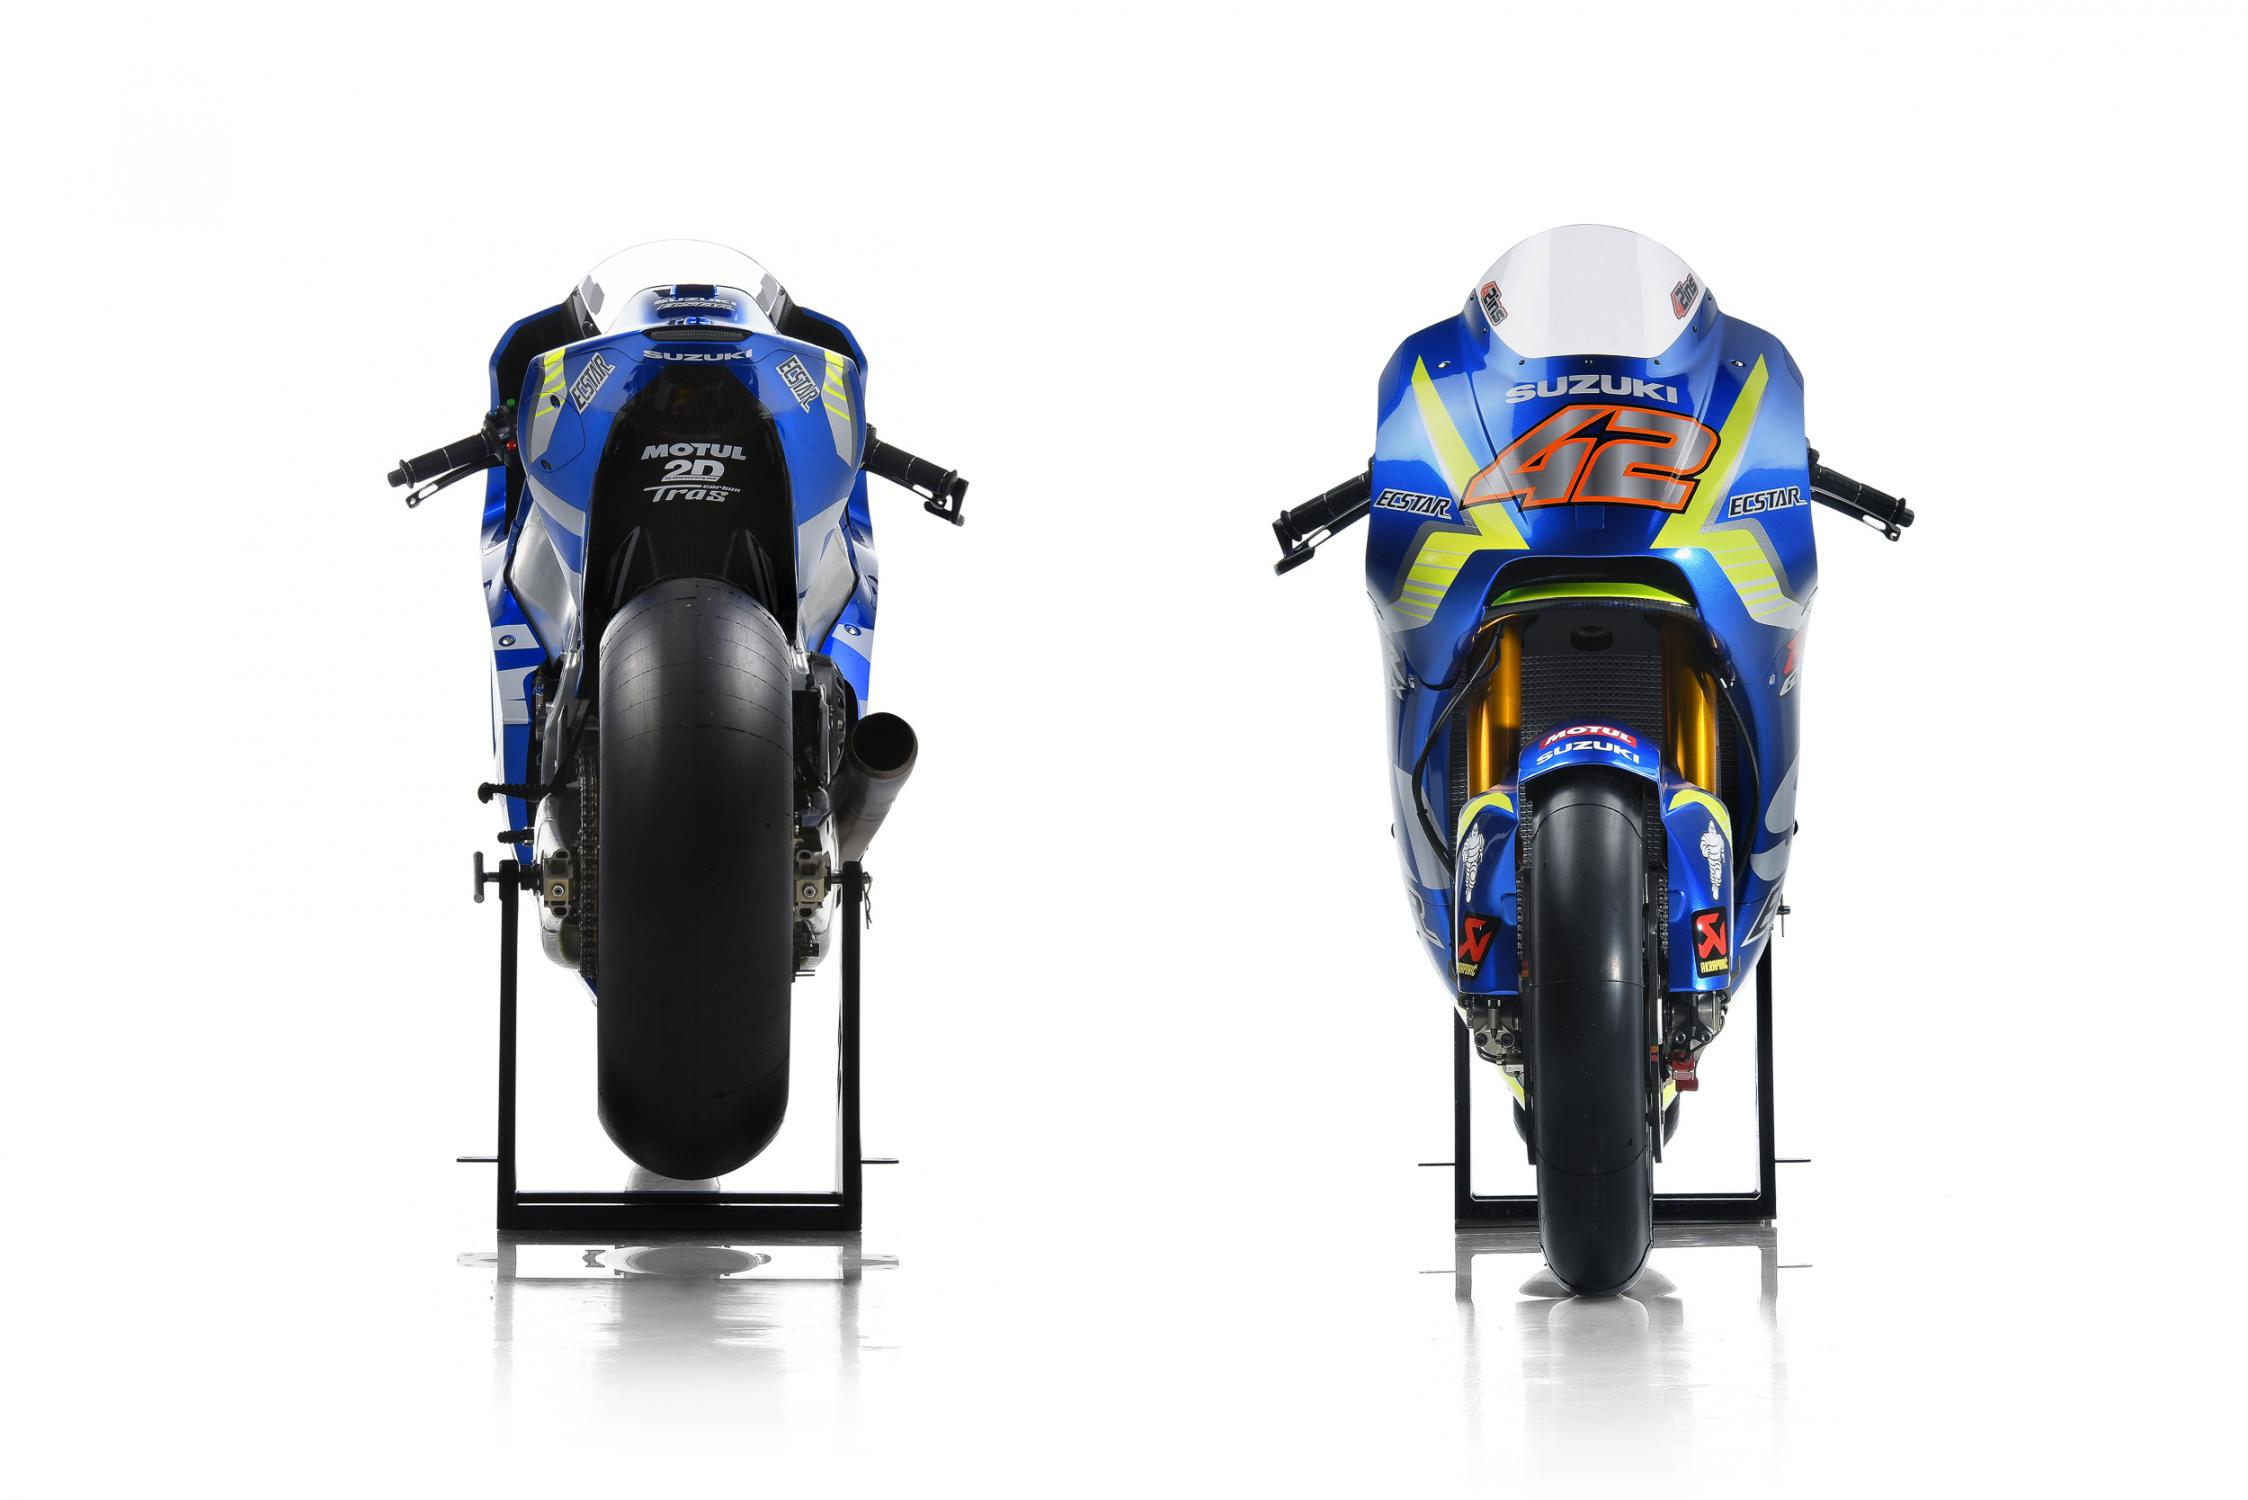 suzuki_gsx-rr_2017_42_front-and-back.gallery_full_top_fullscreen.jpg